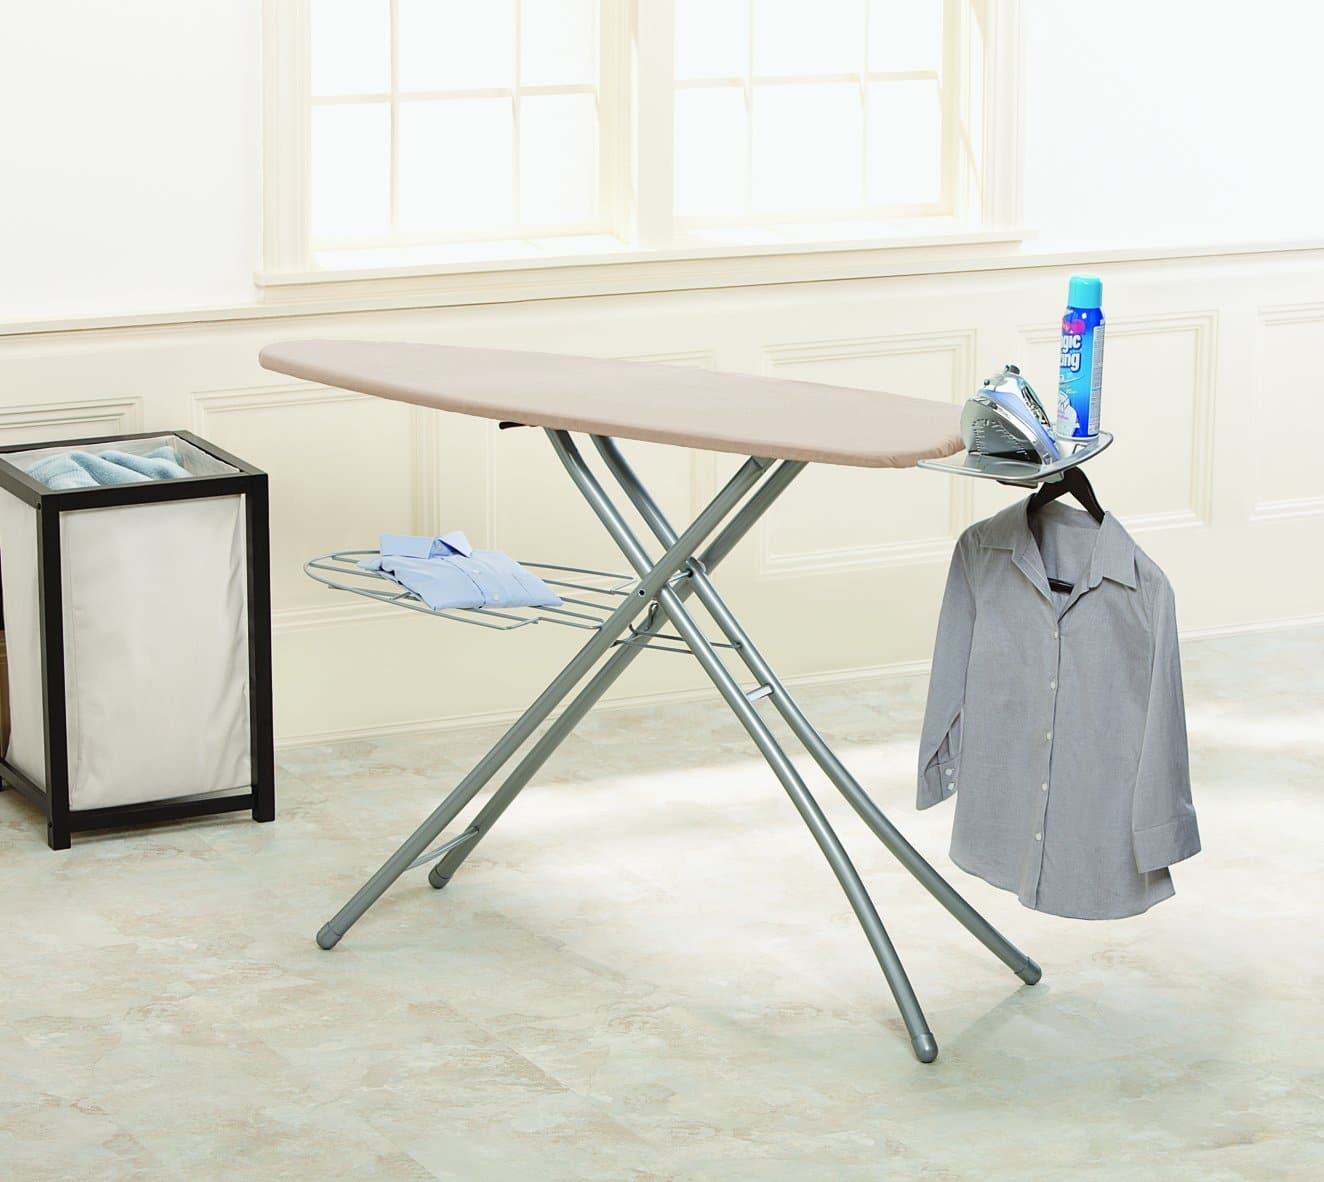 Top 10 Best Space-Saving Ironing Boards 2020 Review